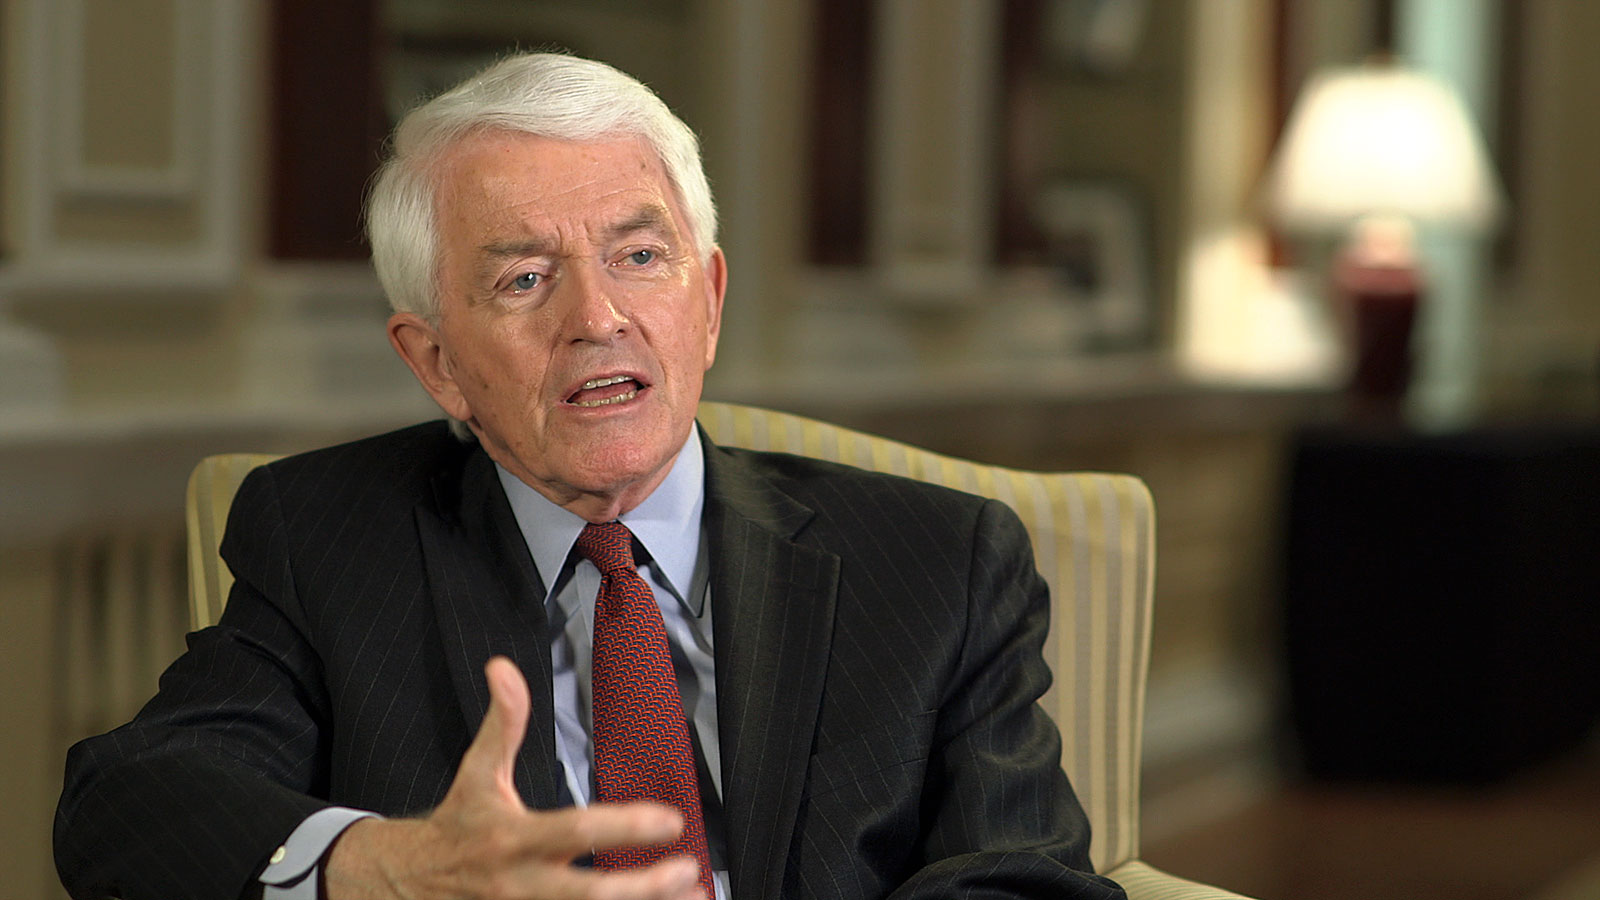 tom donohue interview still james favata tom donohue